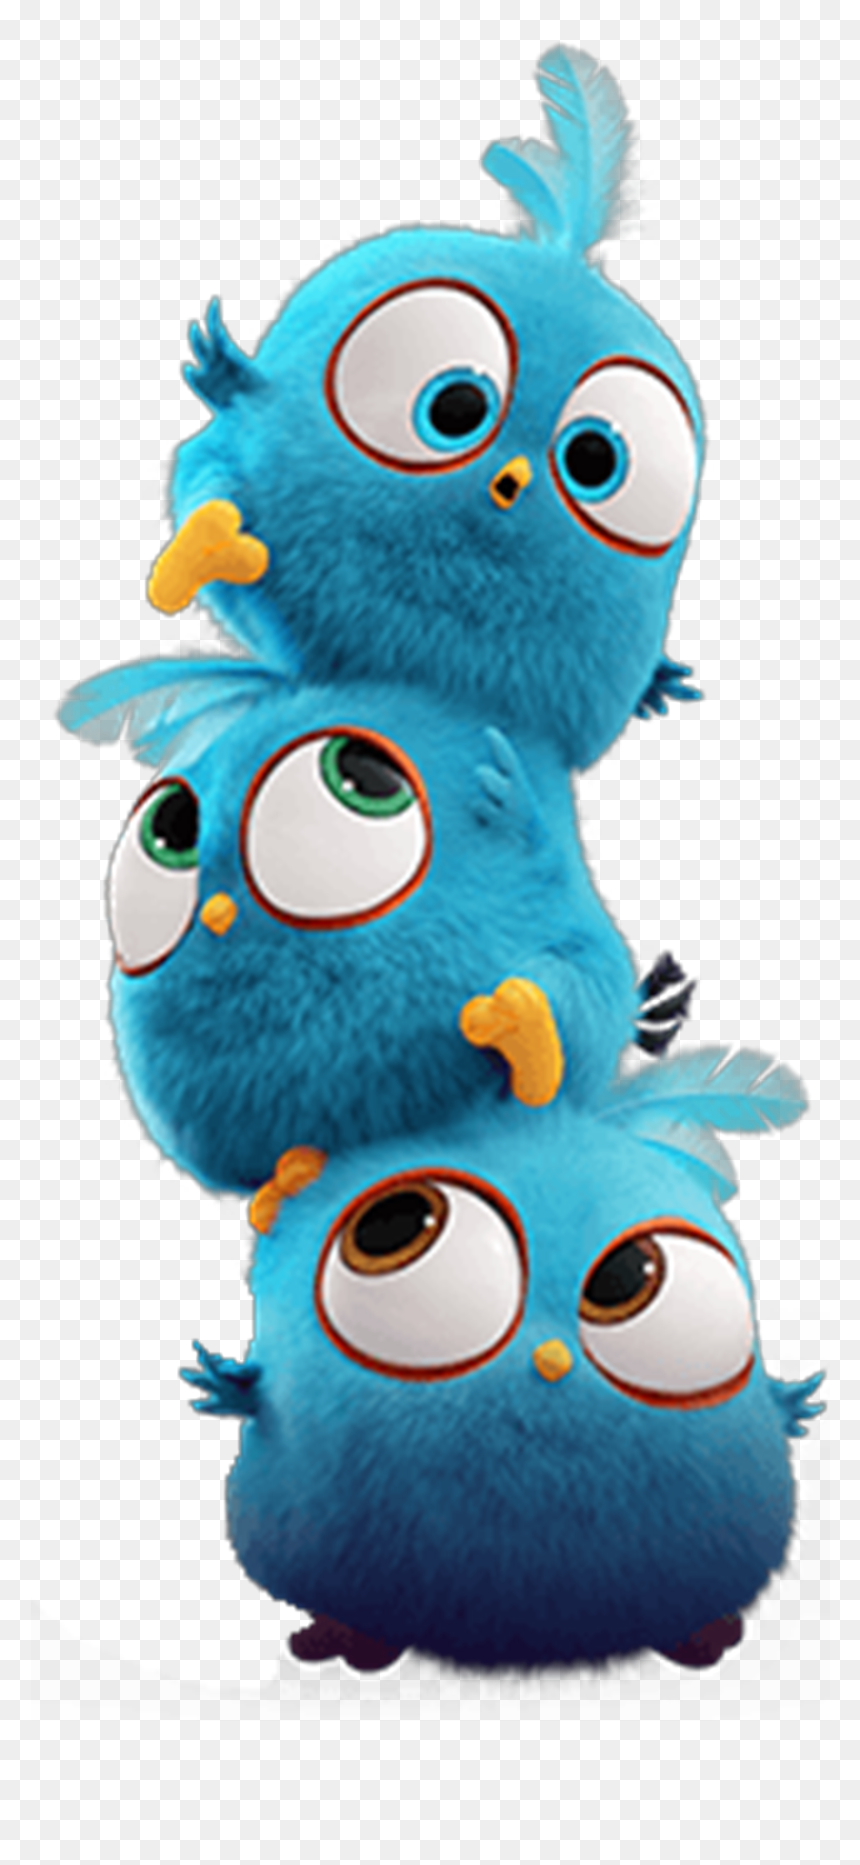 Transparent Cute Bird Png Blue Bird Angry Birds Movie Png Download Vhv